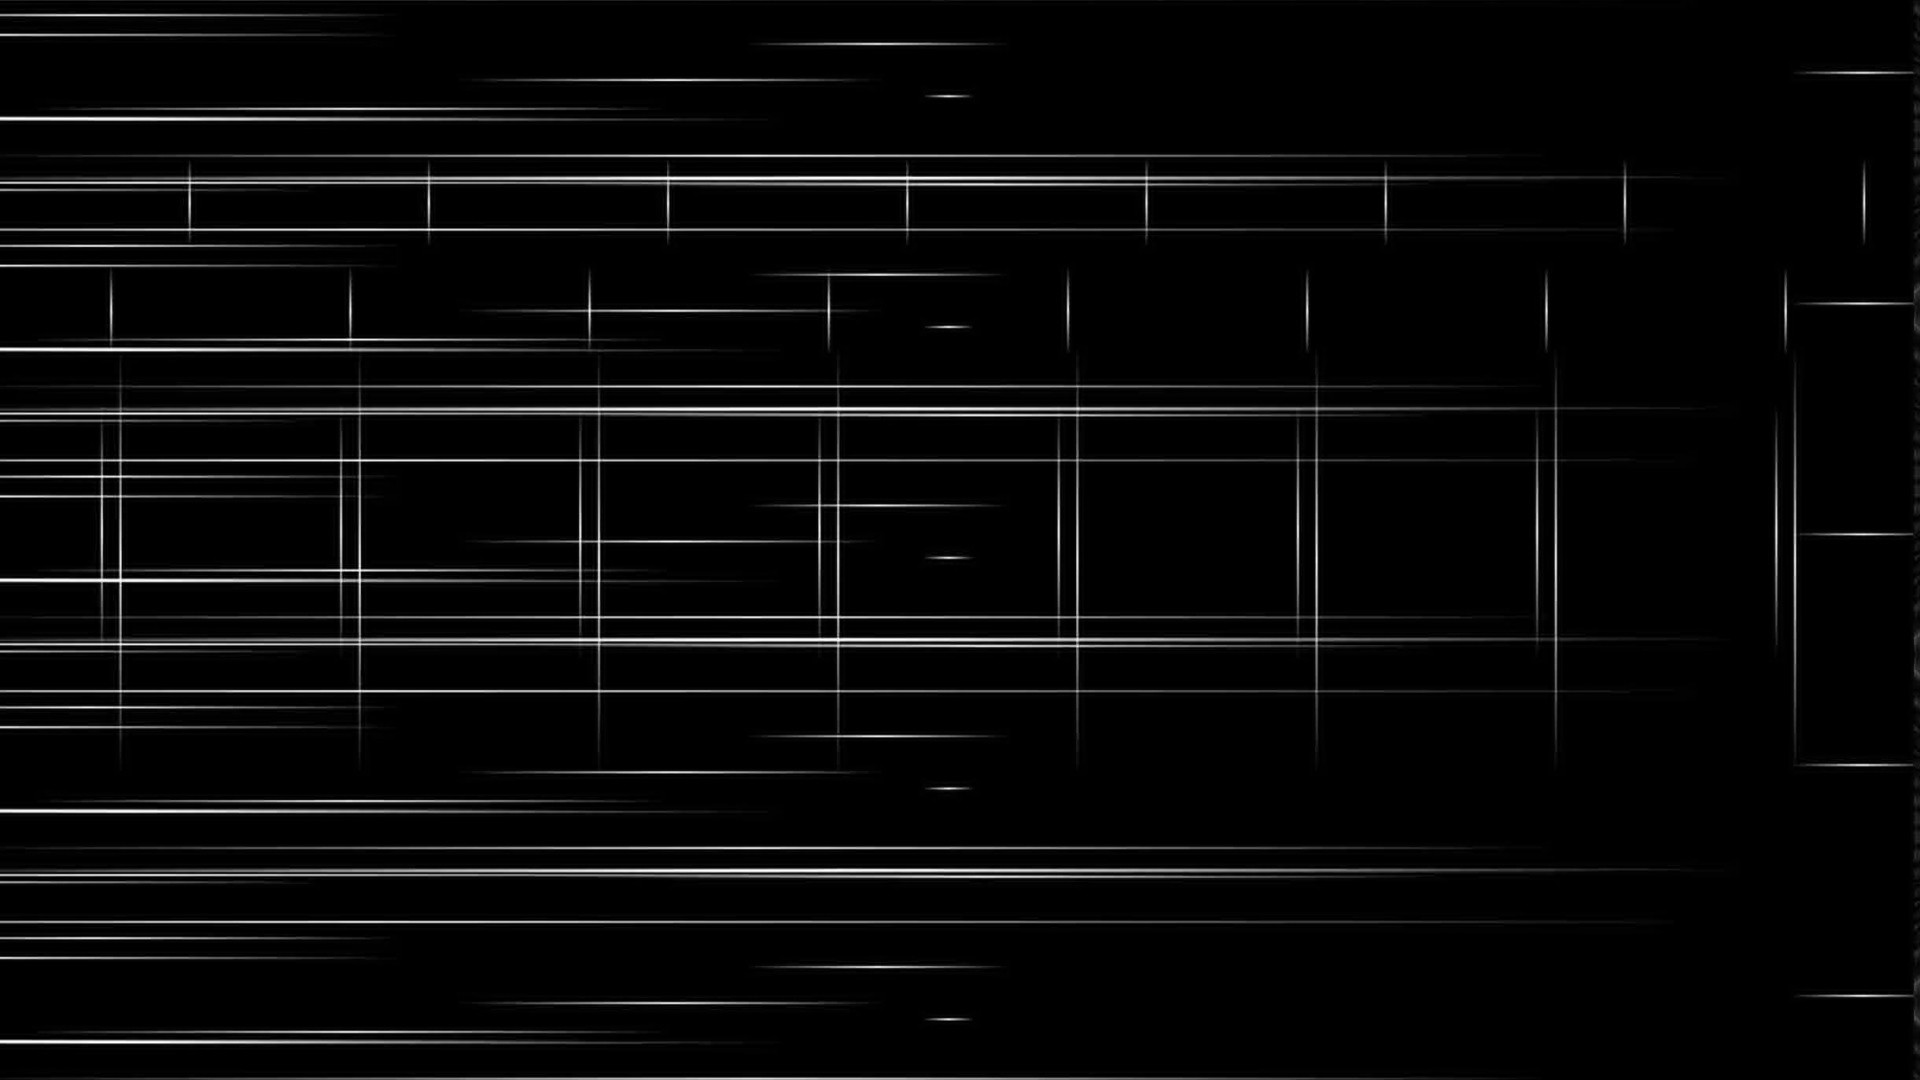 1920x1080 Preview wallpaper black background, stripes, black and white, minimalist